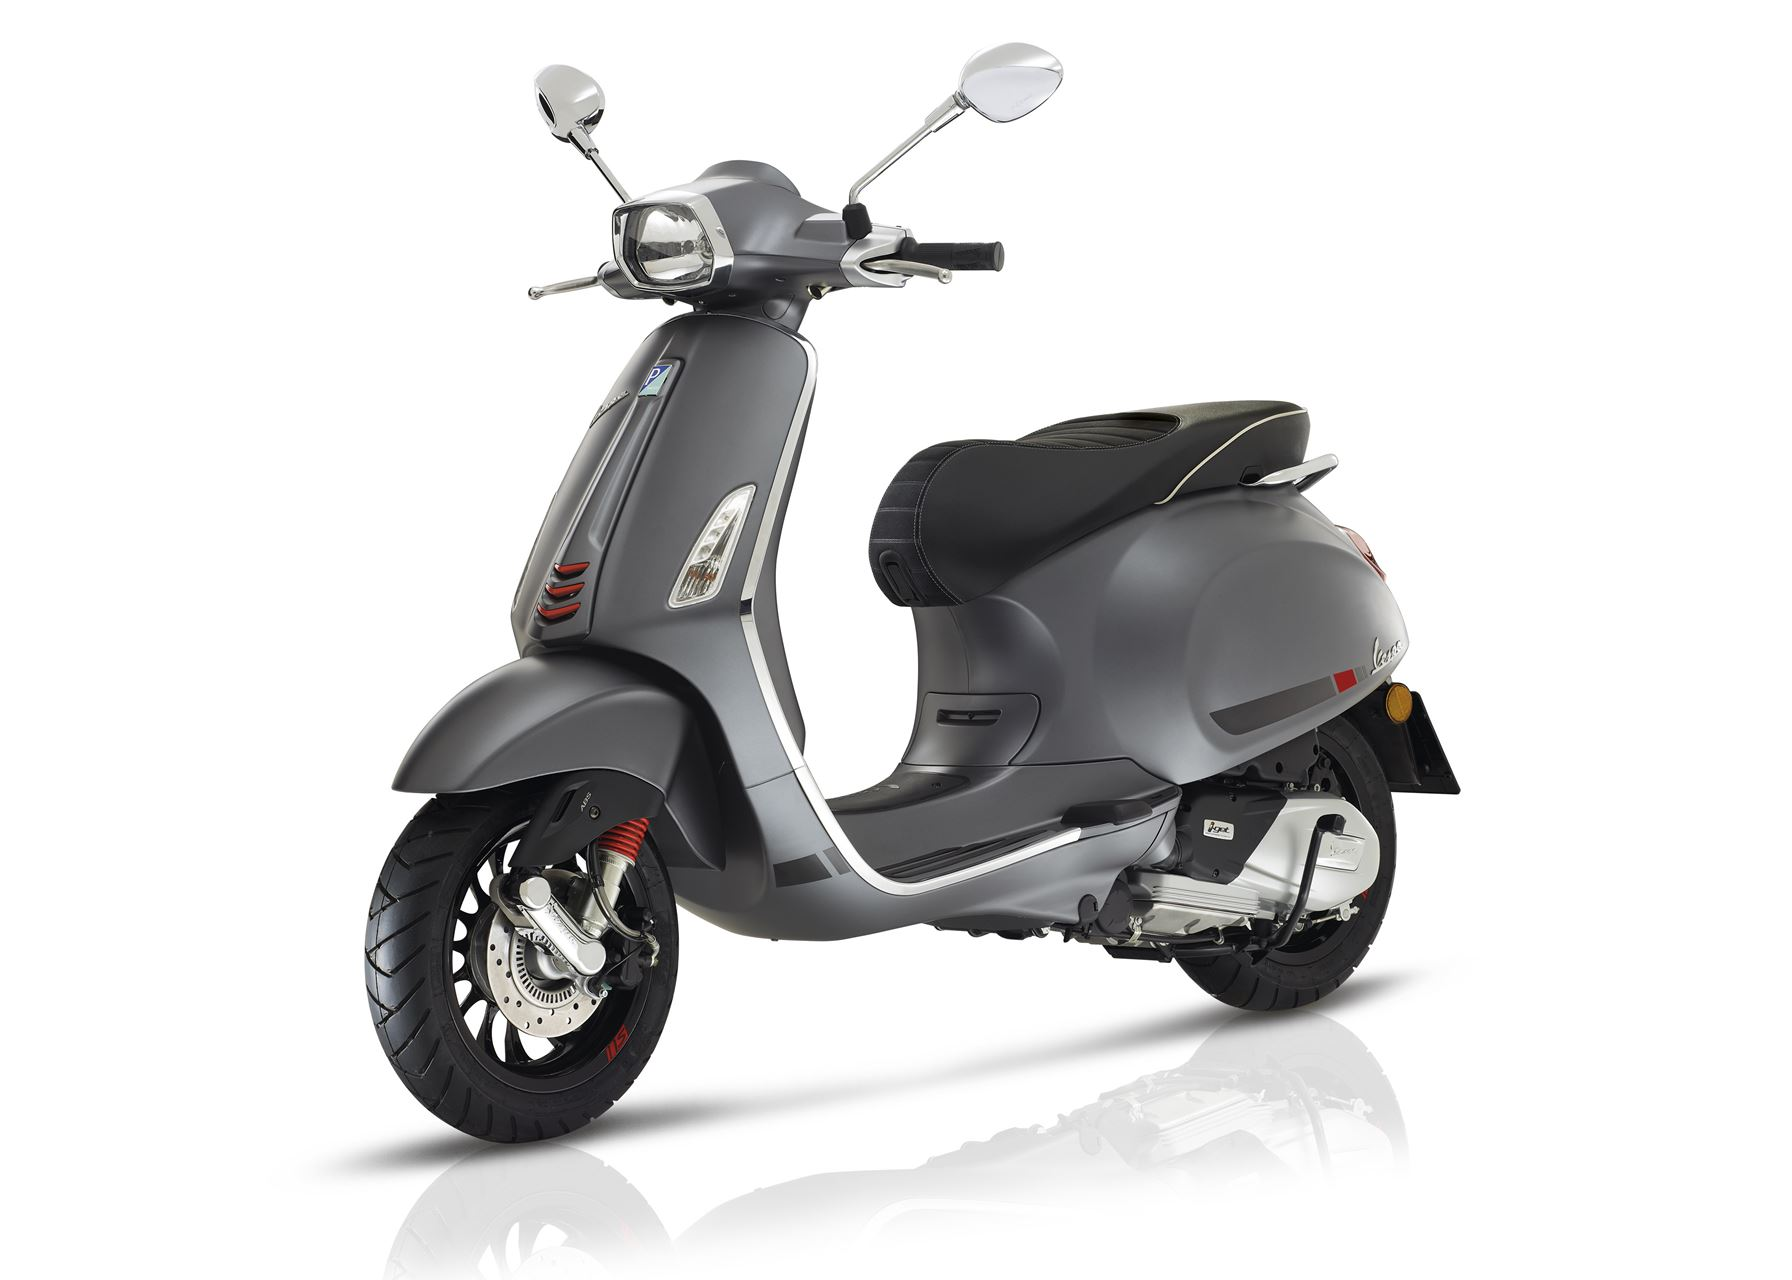 vespa sprint 50 4t sport scooter gama 50cc andar de moto. Black Bedroom Furniture Sets. Home Design Ideas